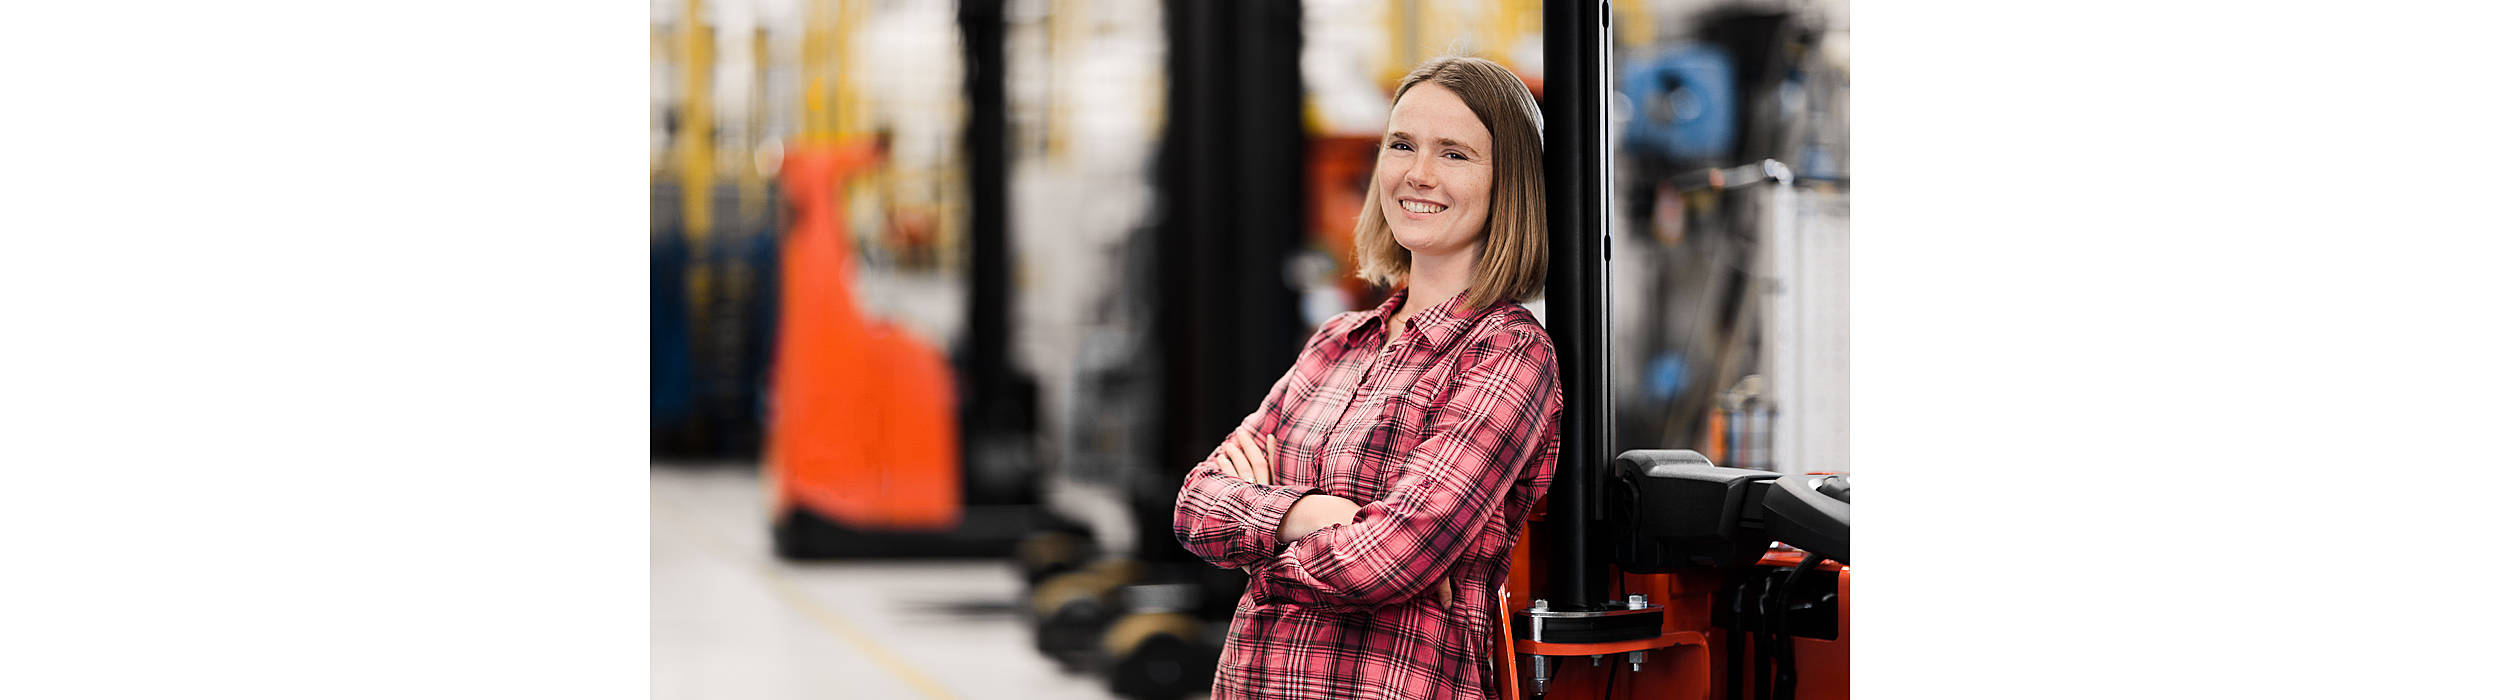 Toyota material handling employee standing at forklift